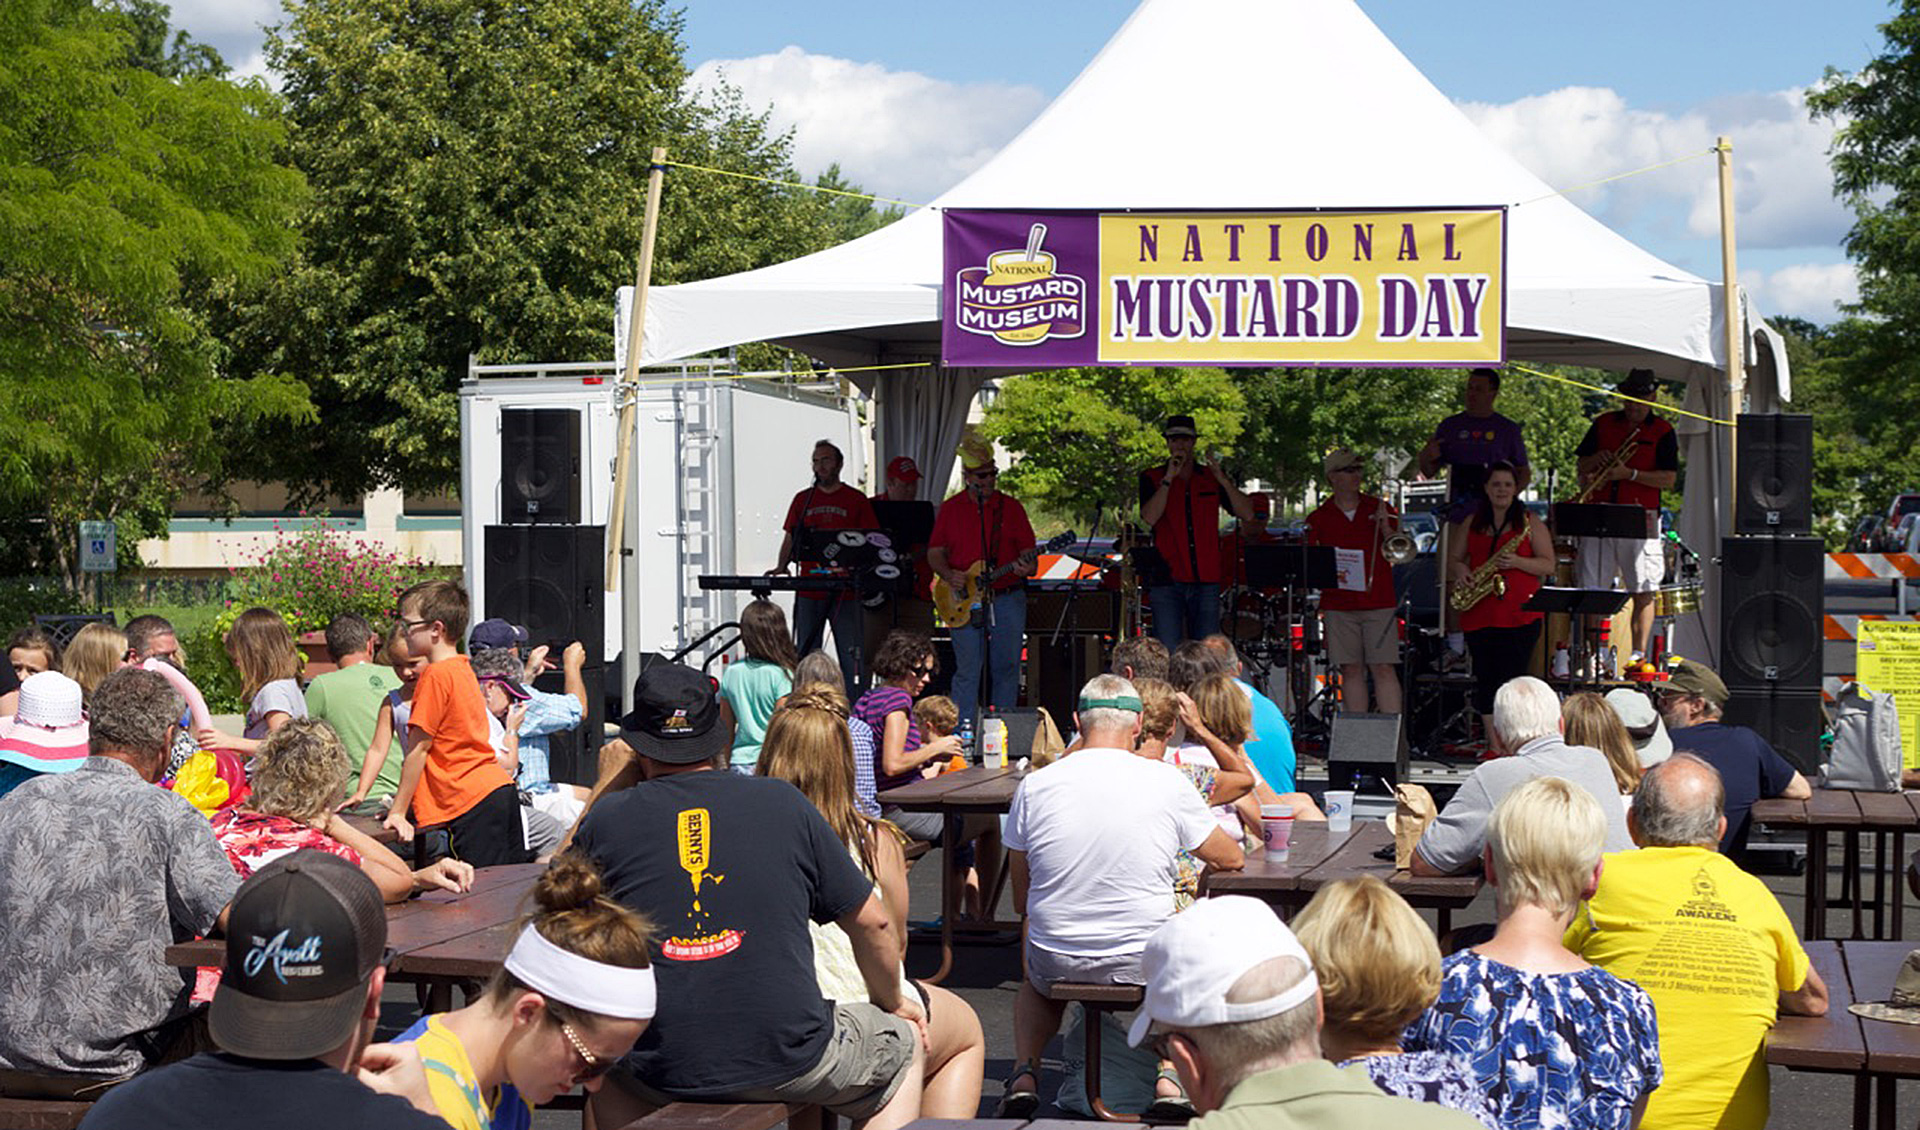 National Mustard Day Live Music